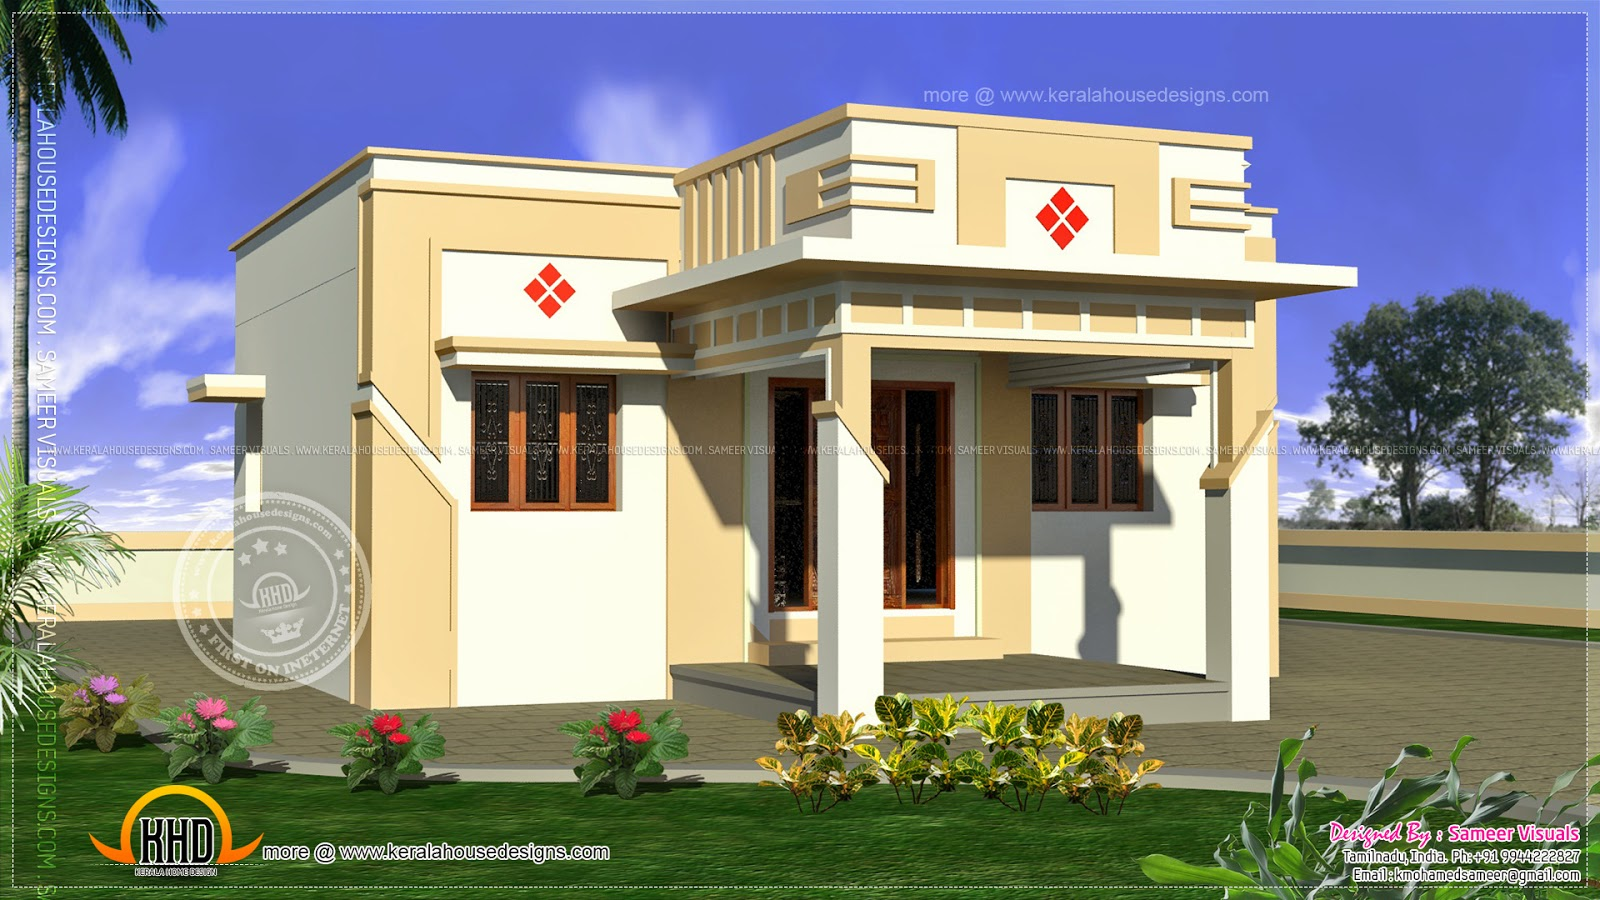 Low cost tamilnadu house kerala home design and floor plans for Tamilnadu house models